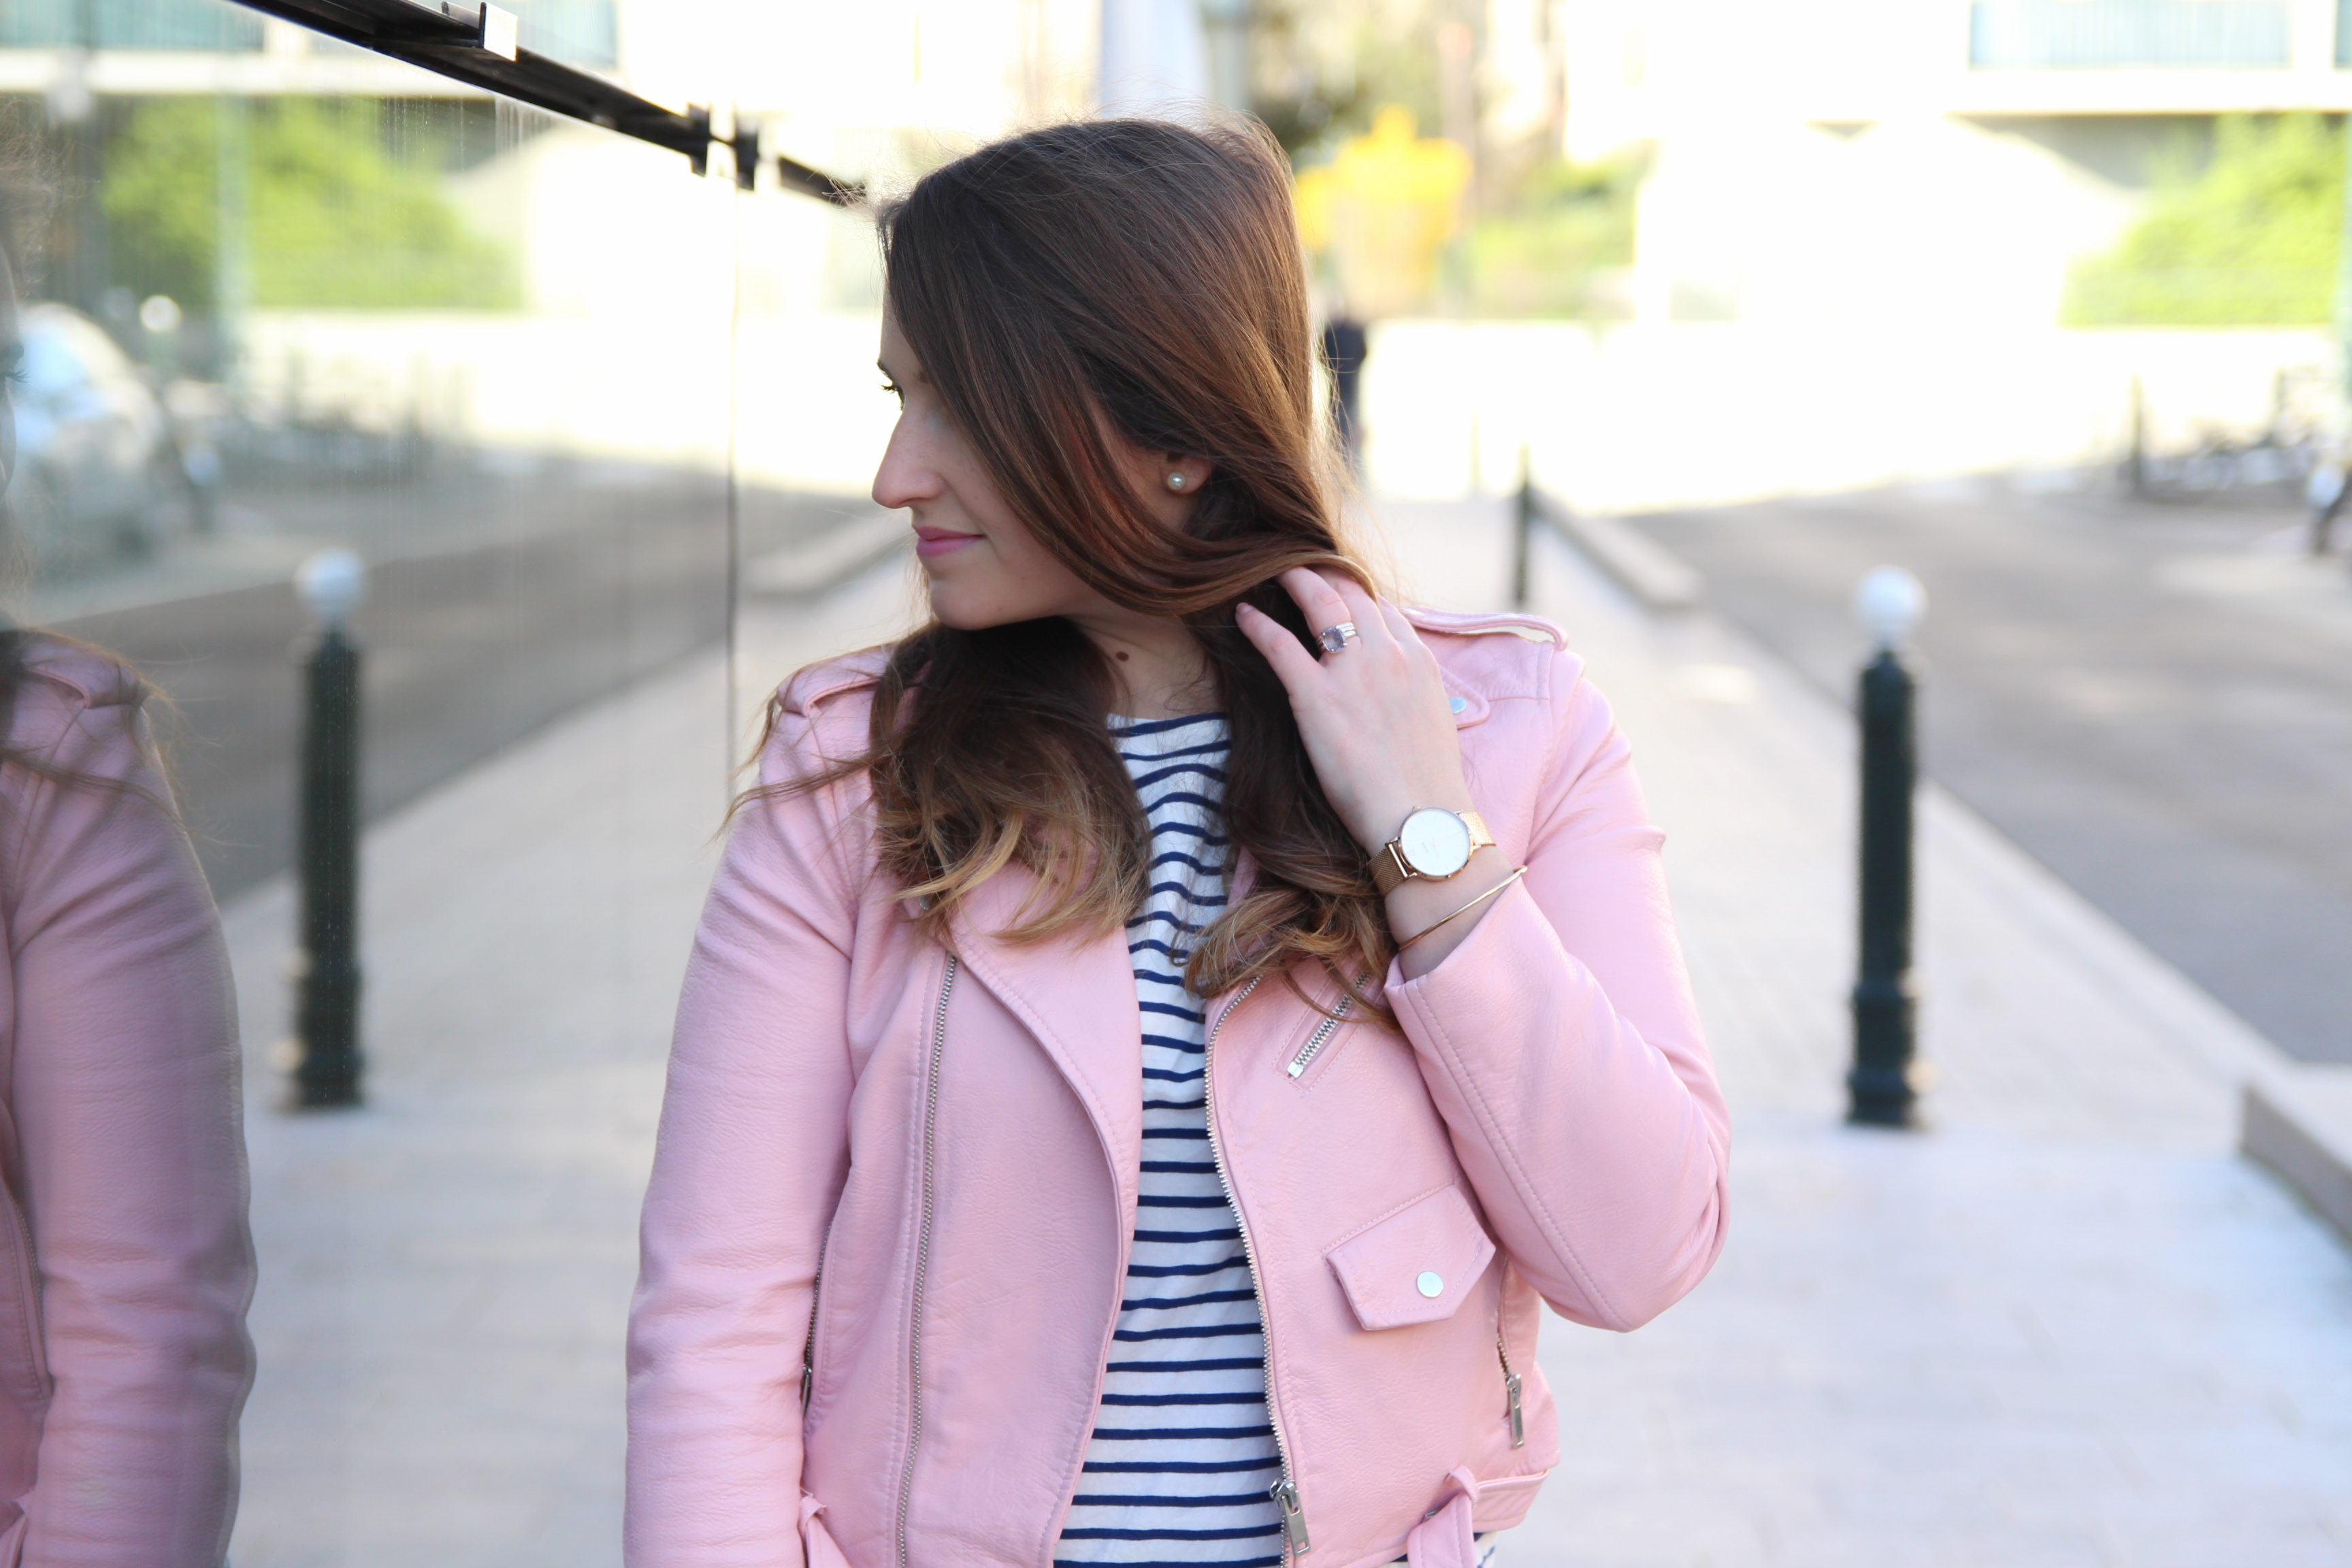 perfecto-rose-zara-marinniere-denim-influencer-fashion-ottd-look-seralynepointcom-paris-IMG_7019